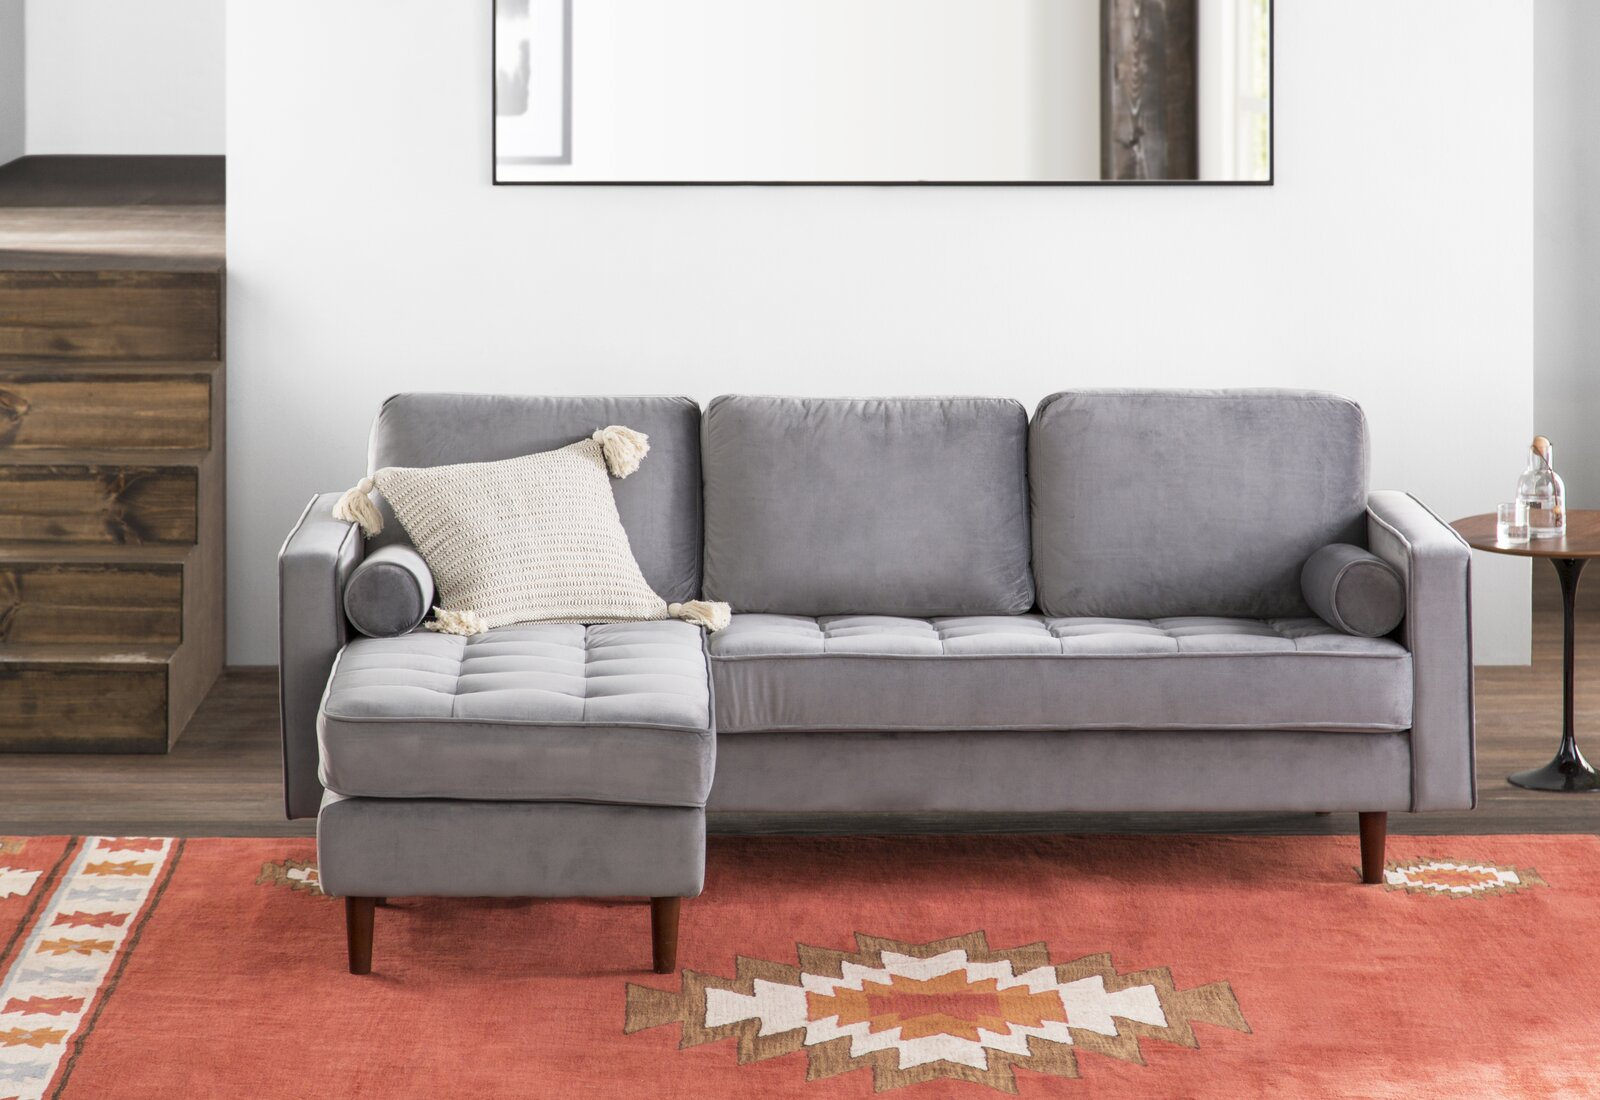 L shaped sectional living room